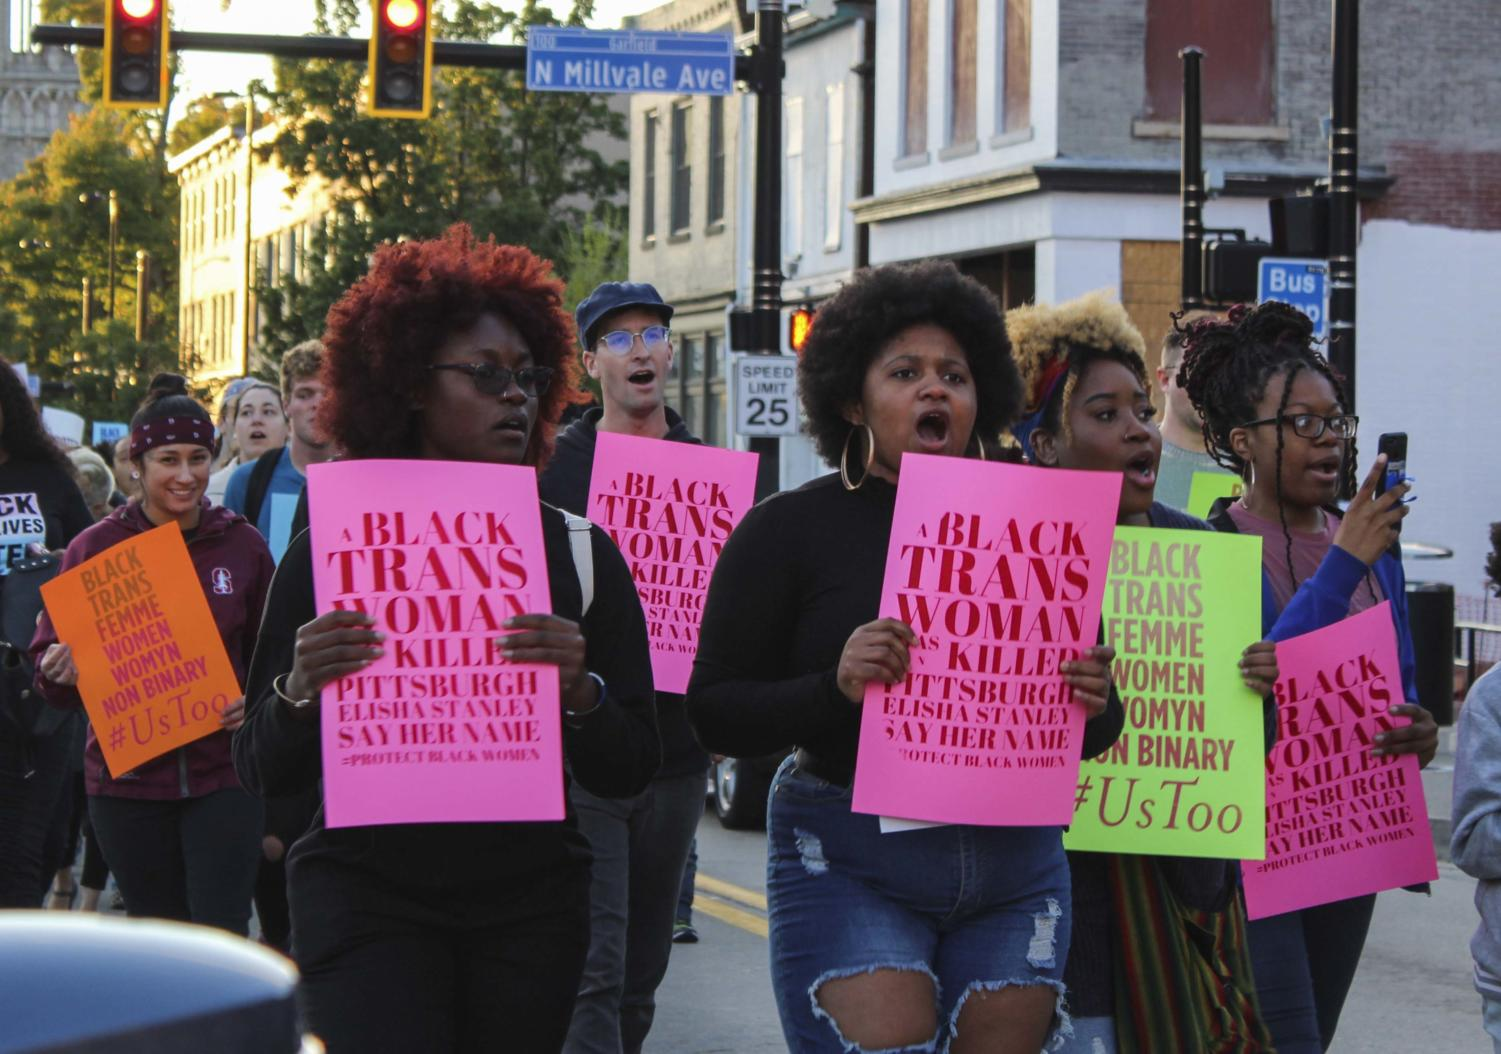 About 100 people met at the intersection of Main Street and Penn Avenue in Bloomfield Friday evening to show support for black and trans women.